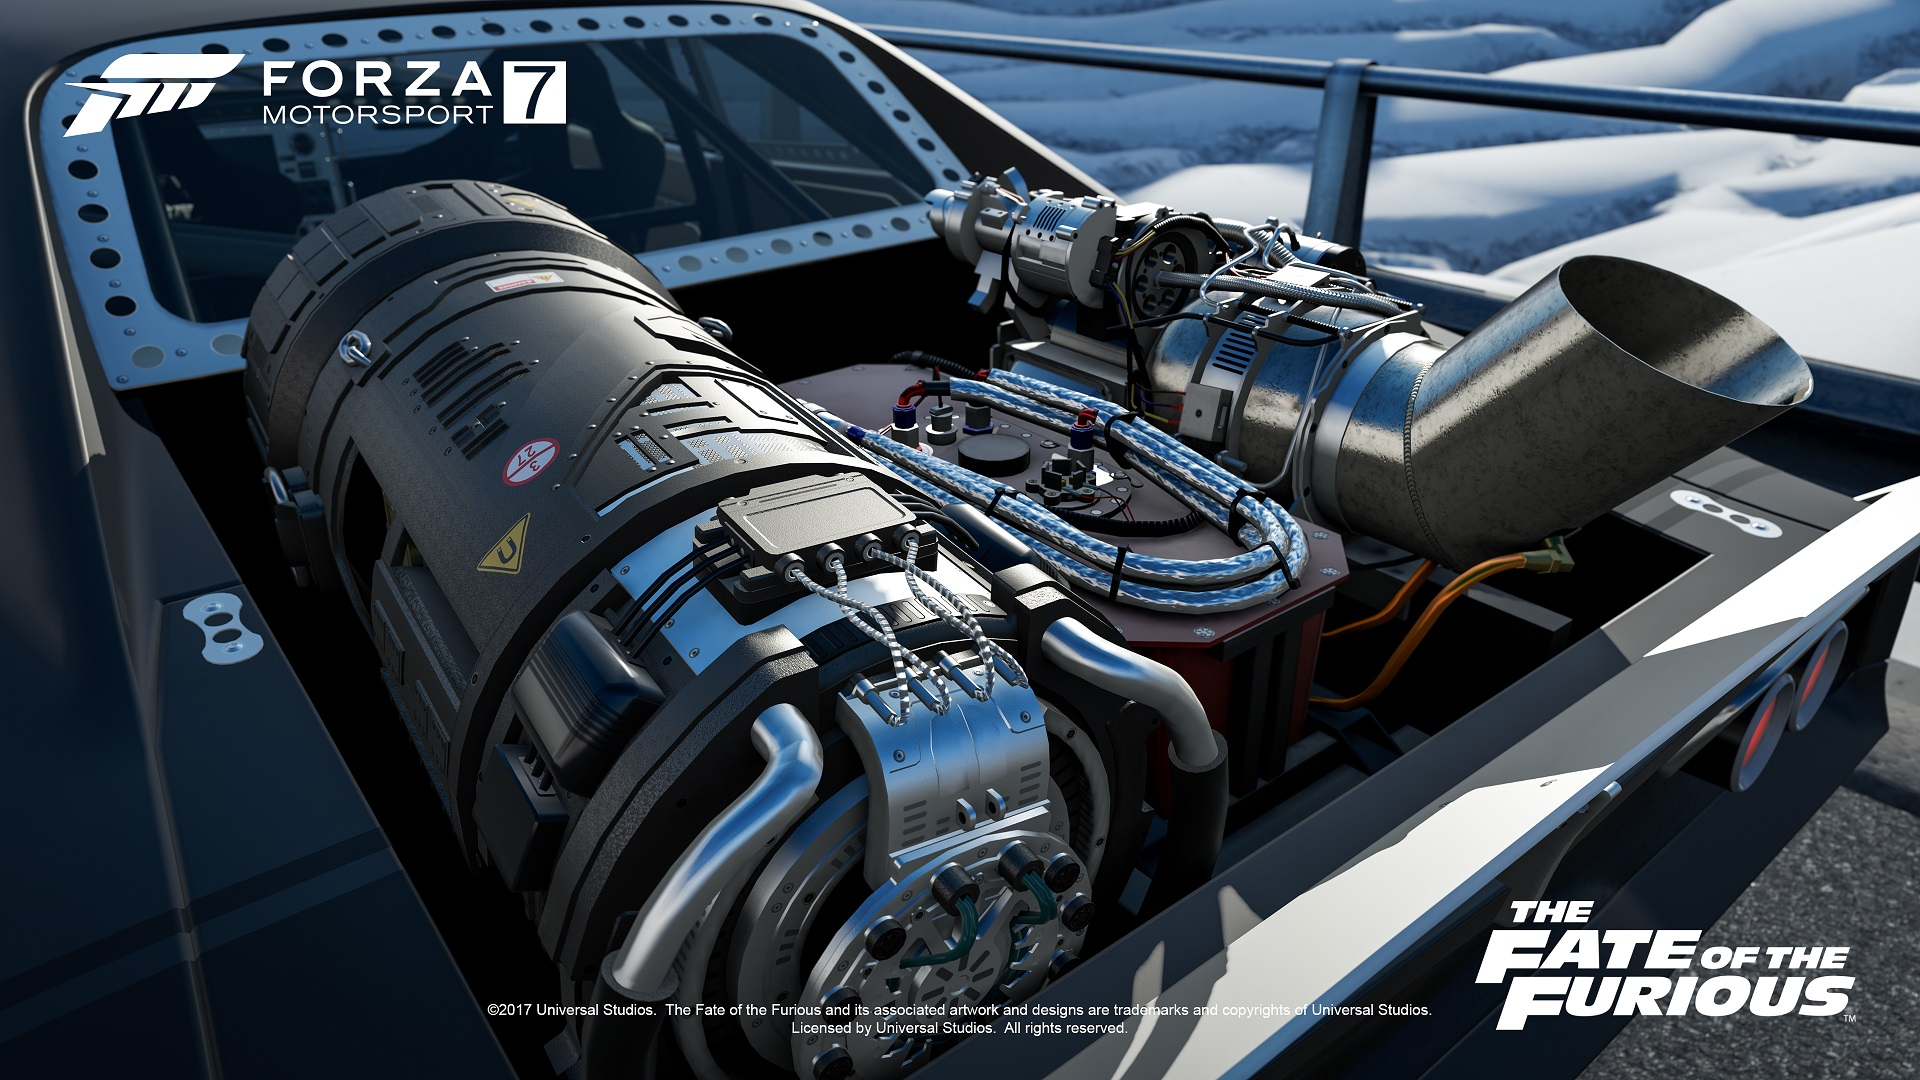 Victory Automotive Group >> Fast and Furious 'Fate of the Furious' Car Pack Announced for 'Forza Motorsport 7' - The Drive